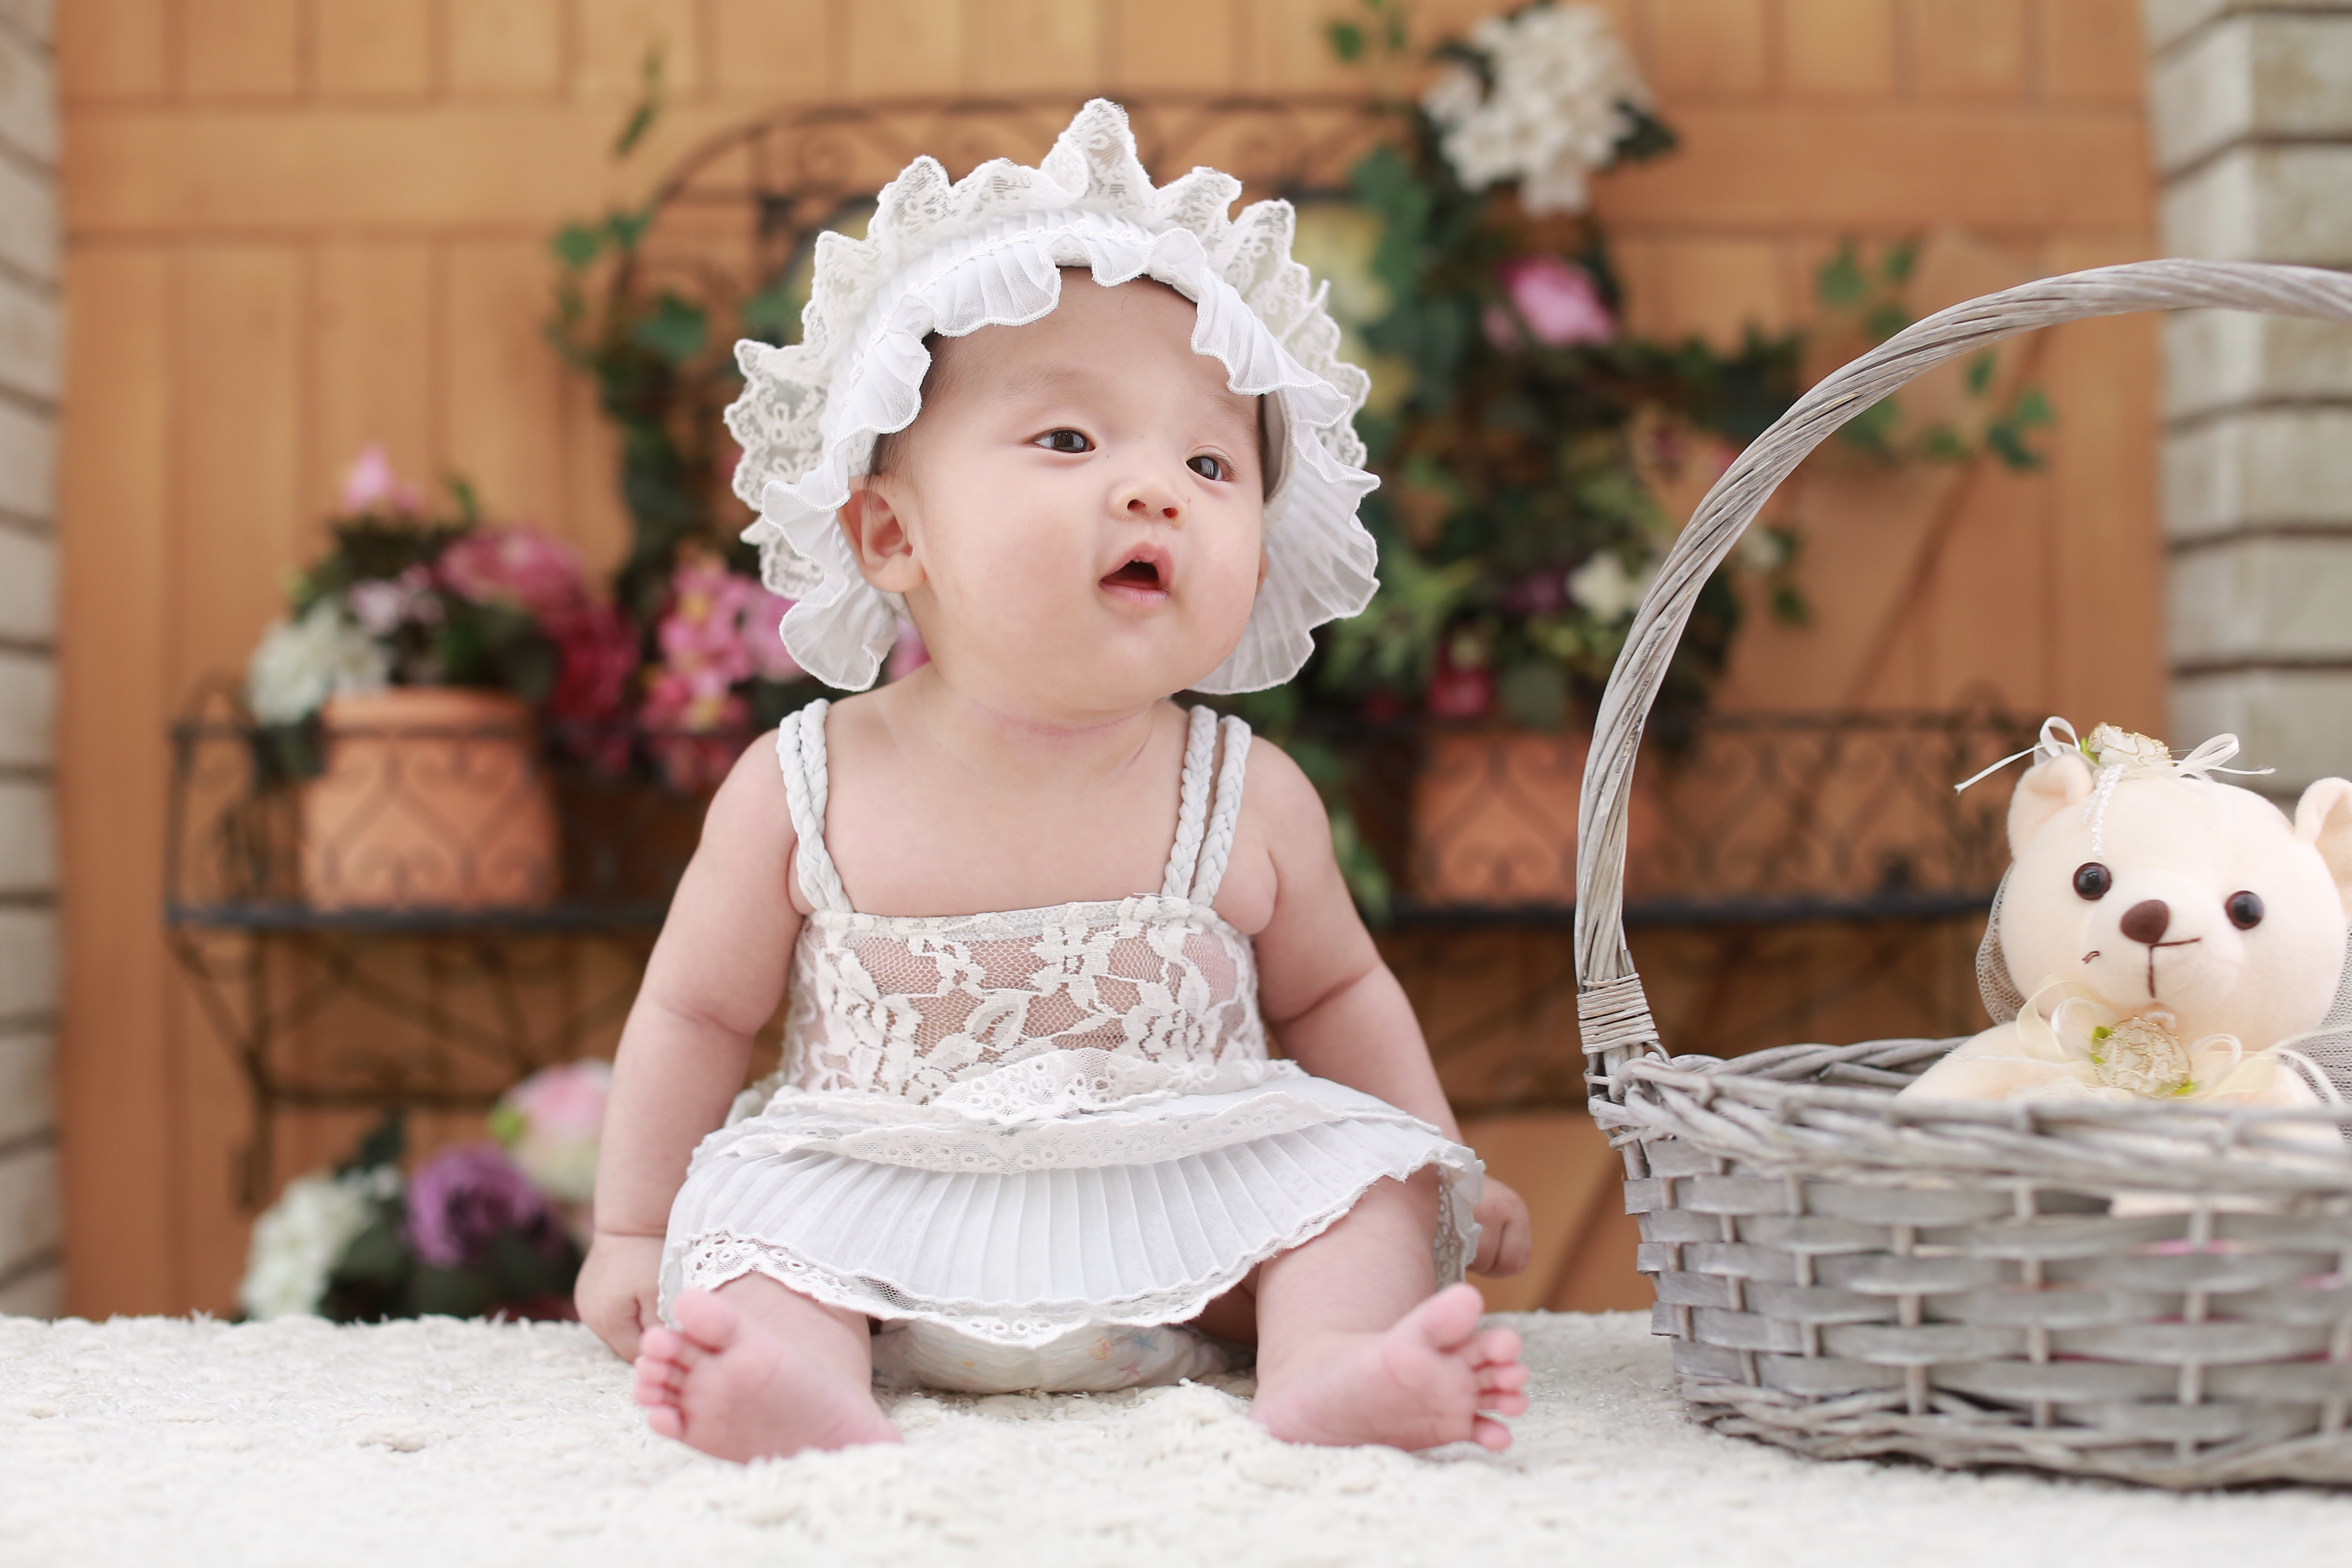 adorable-baby-basket-265960